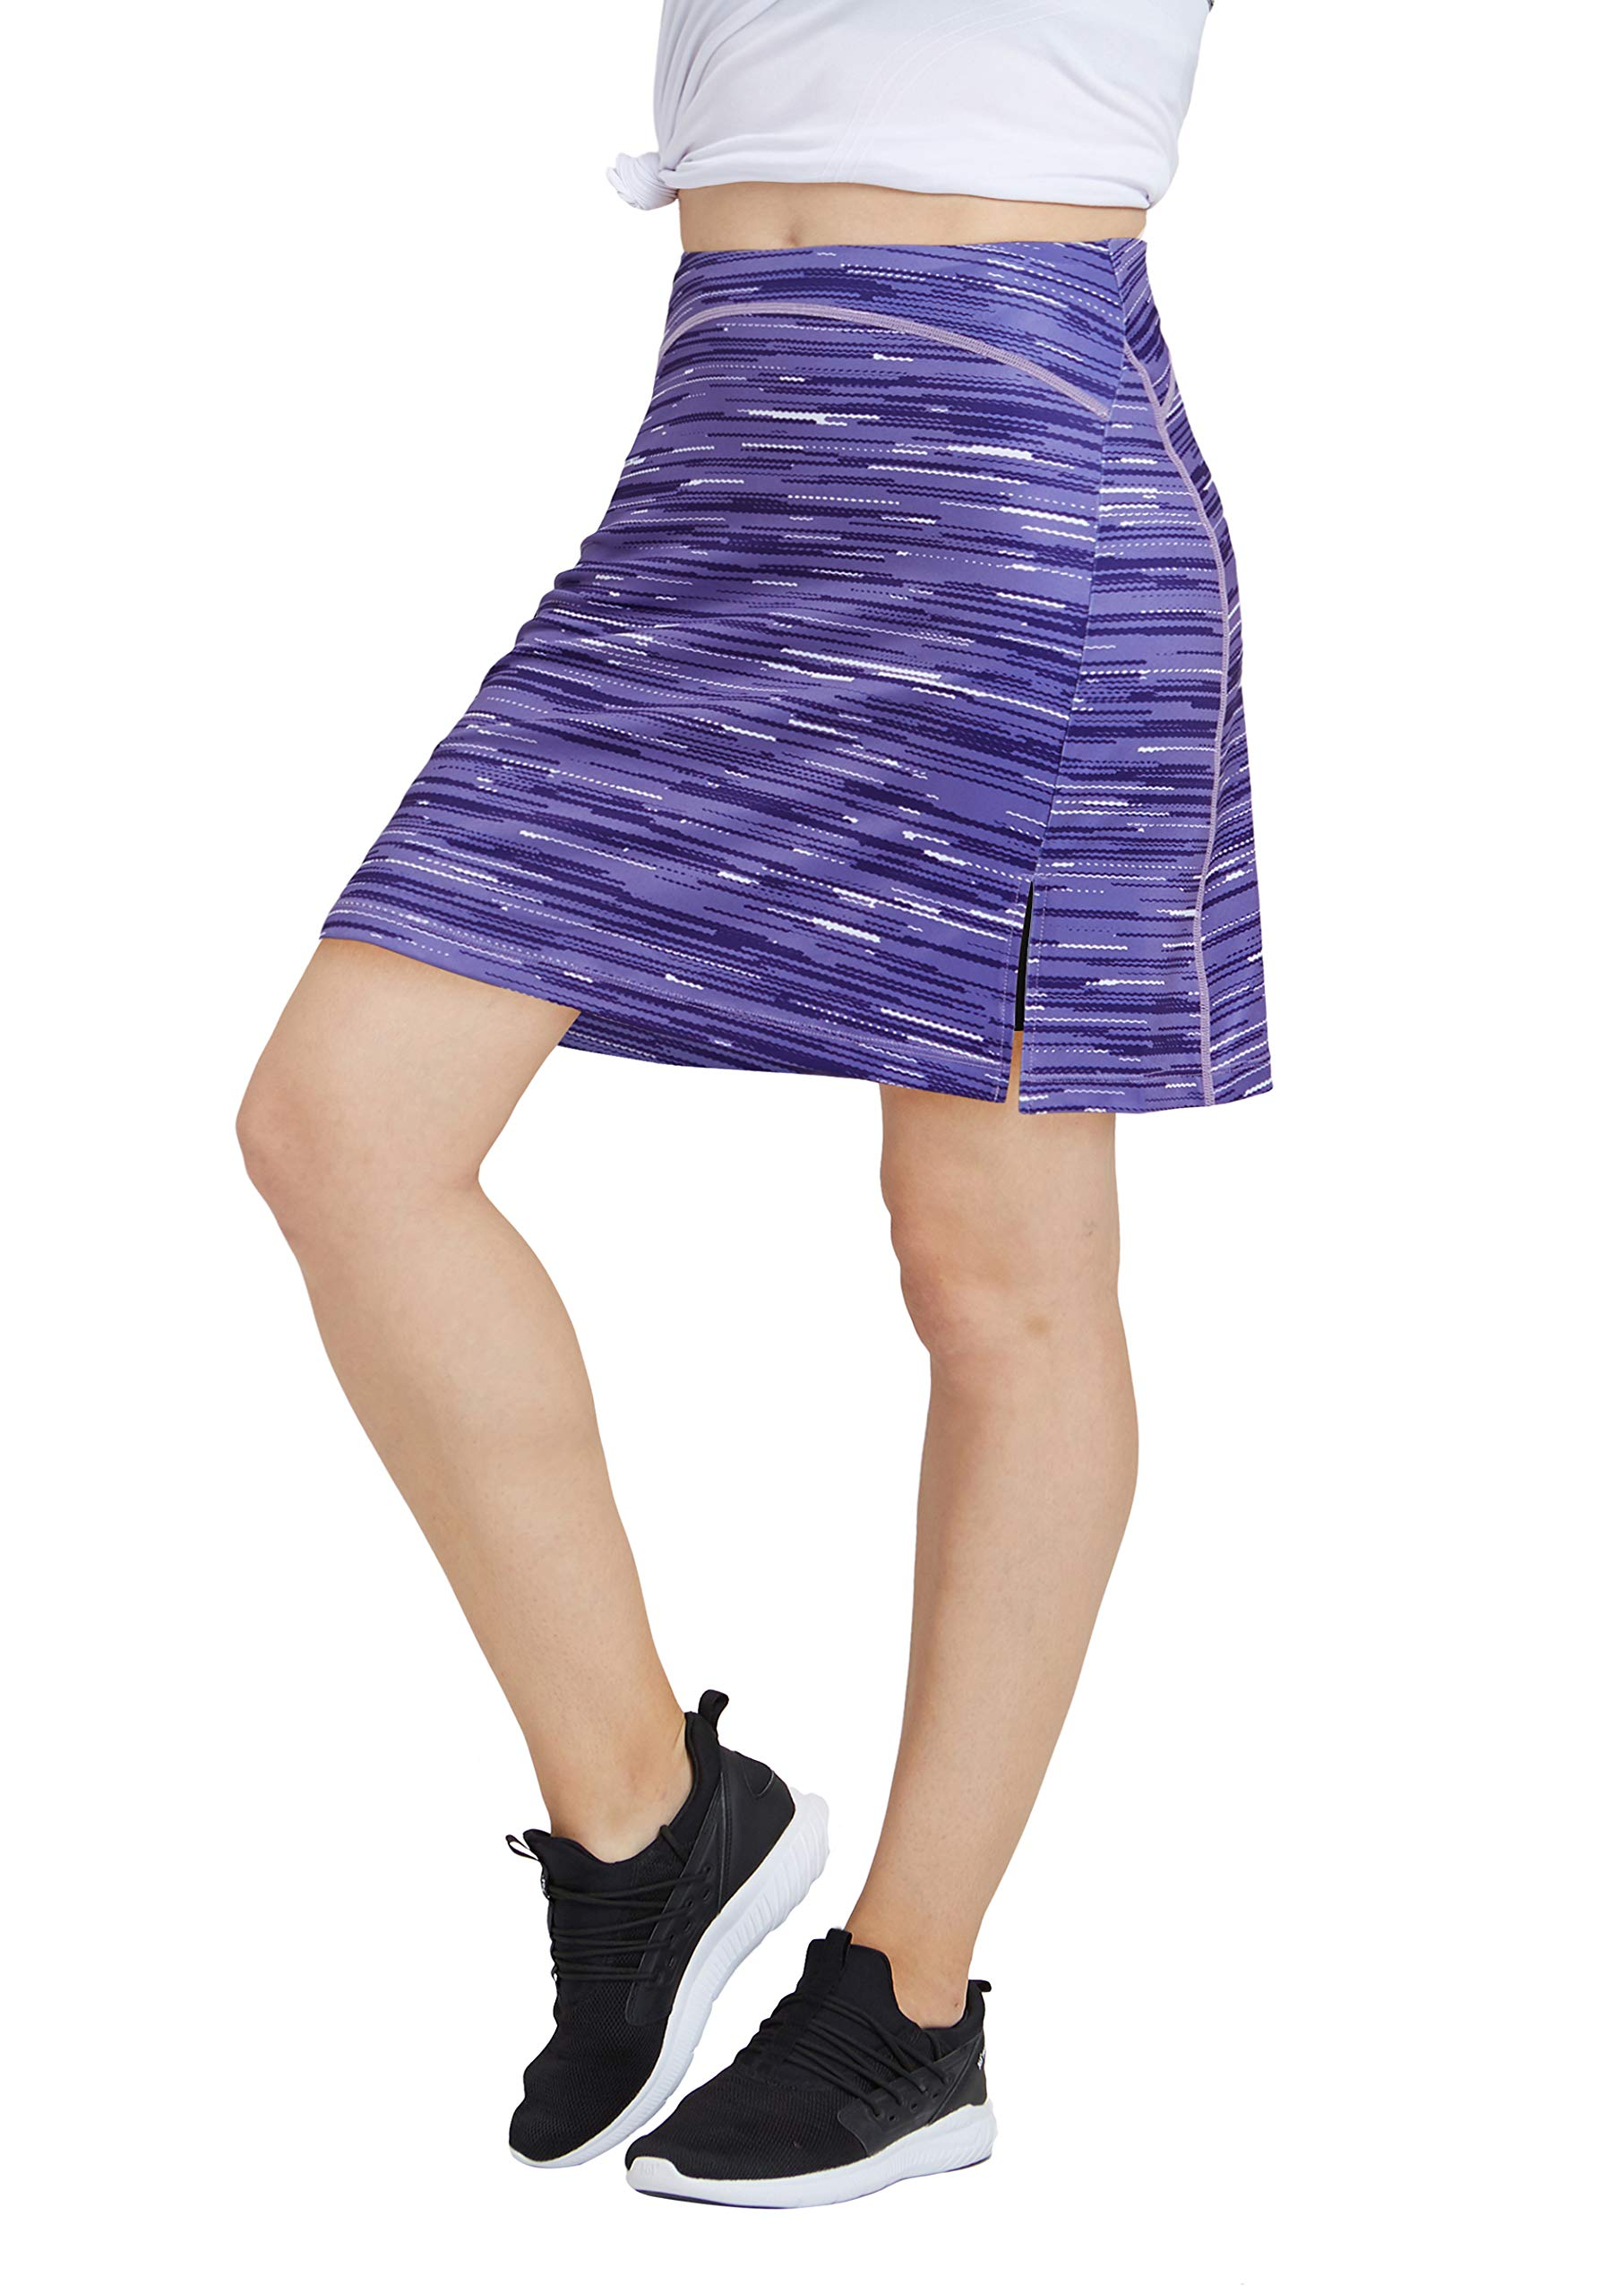 Women Print Golf Skirt Travel Skirts with Pockets Swim Skirt High Waist with Shorts Purple P M by slimour